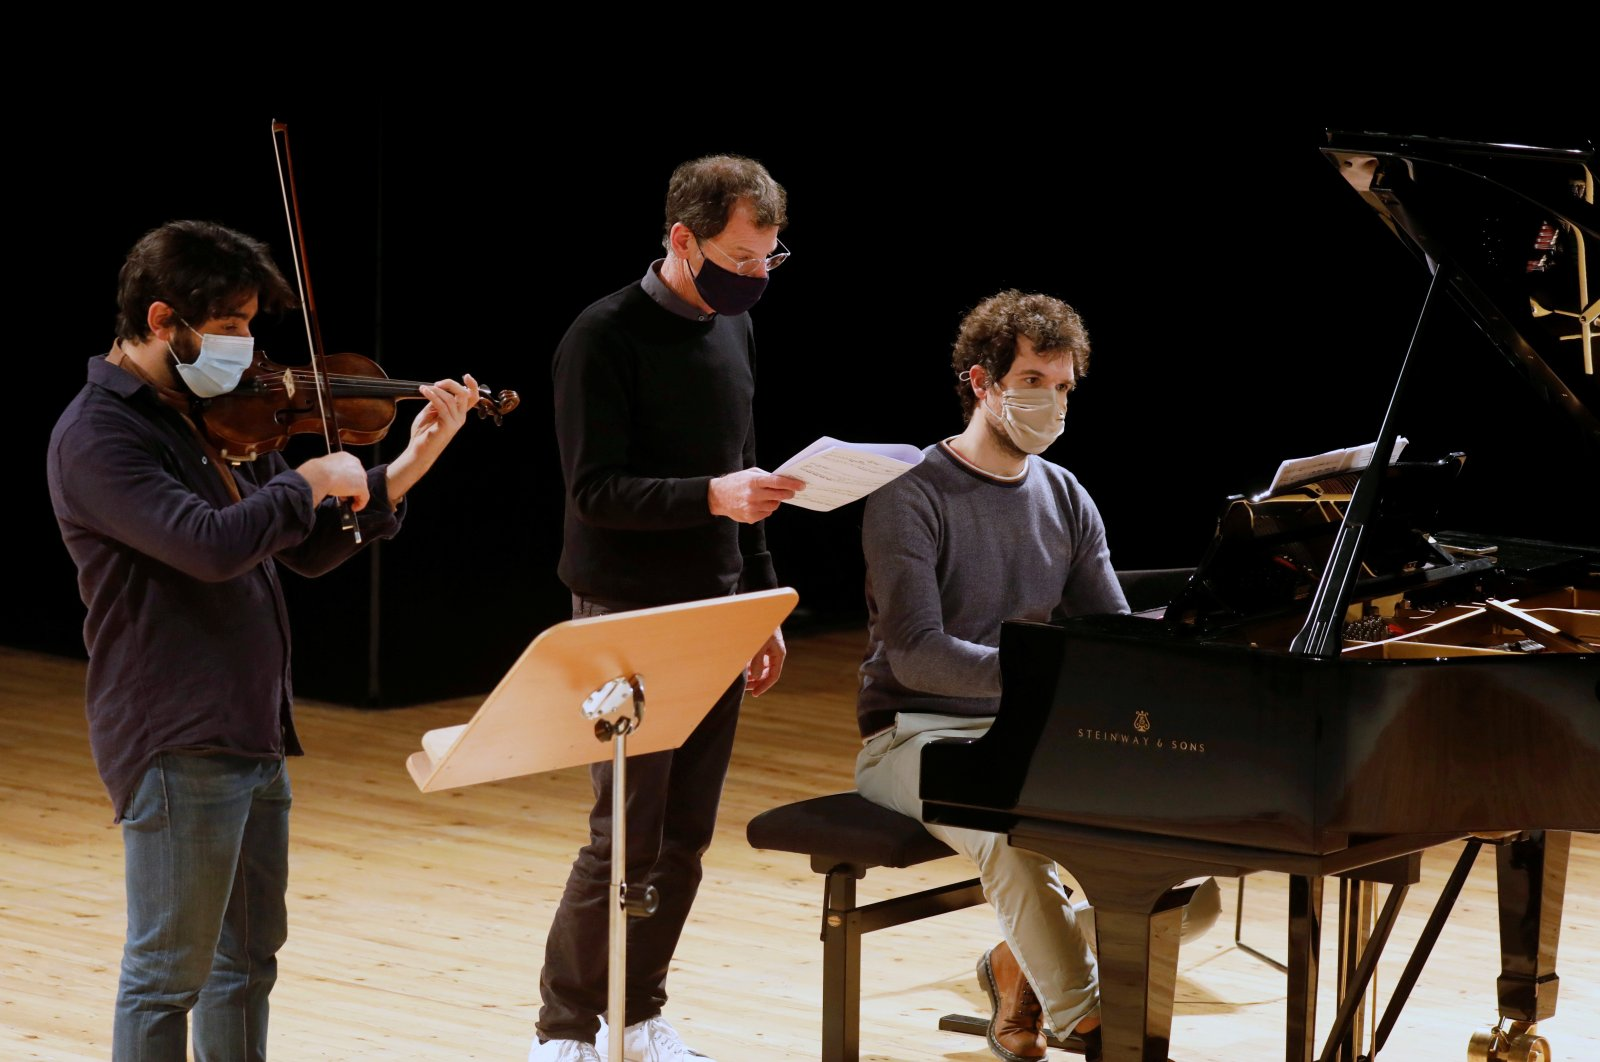 Violinist Yoan Brakha, director Simon Valastro and pianist Felix Ramos, members of the Opera de Paris Academy, rehearse in masks at the Bastille Opera in Paris, France, Dec. 11, 2020. (Reuters Photo)